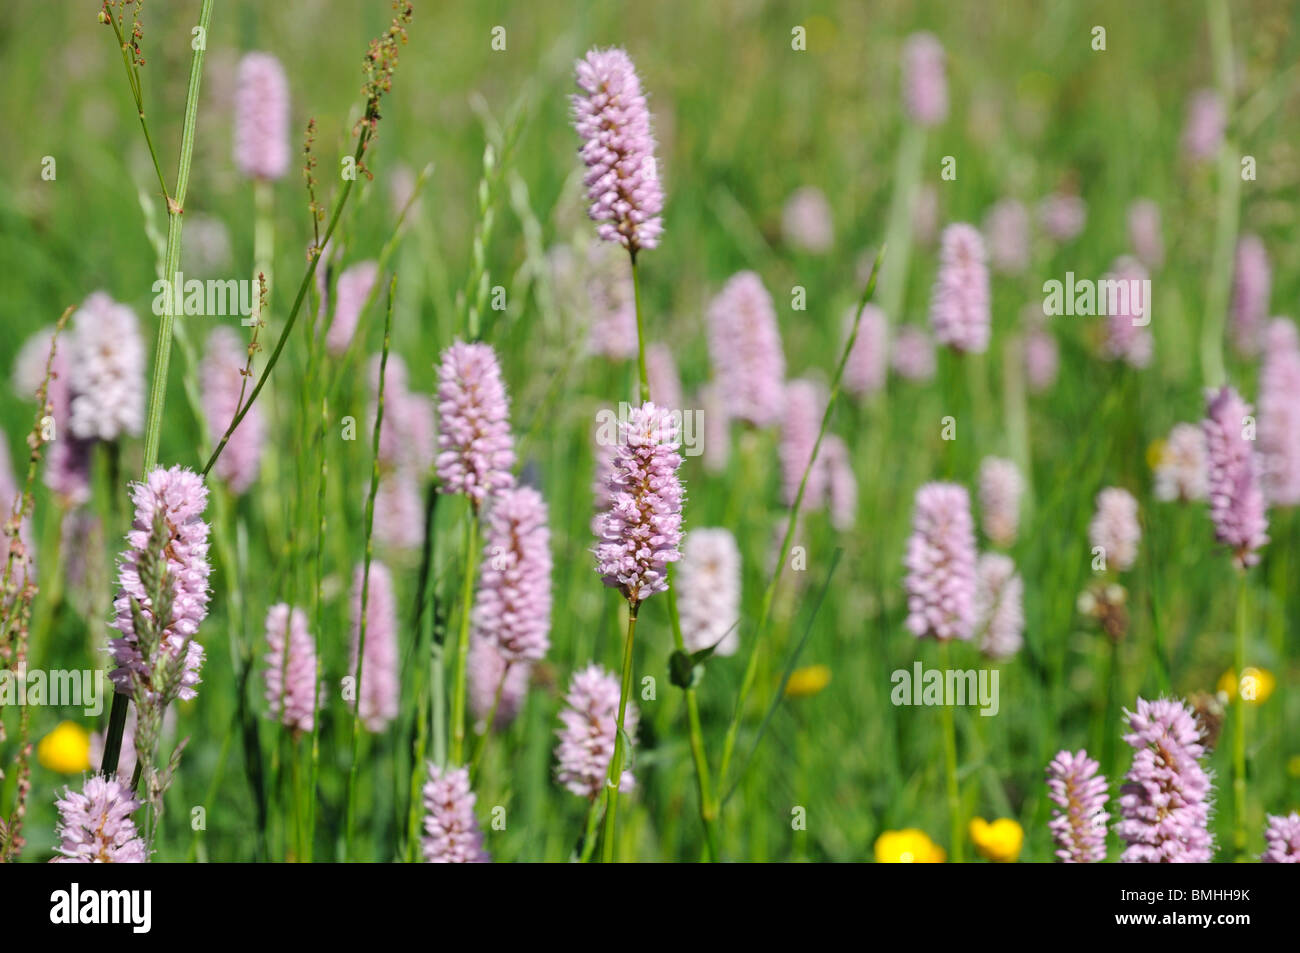 Purple Clover Flowers In The Field Stock Photo 29890271 Alamy